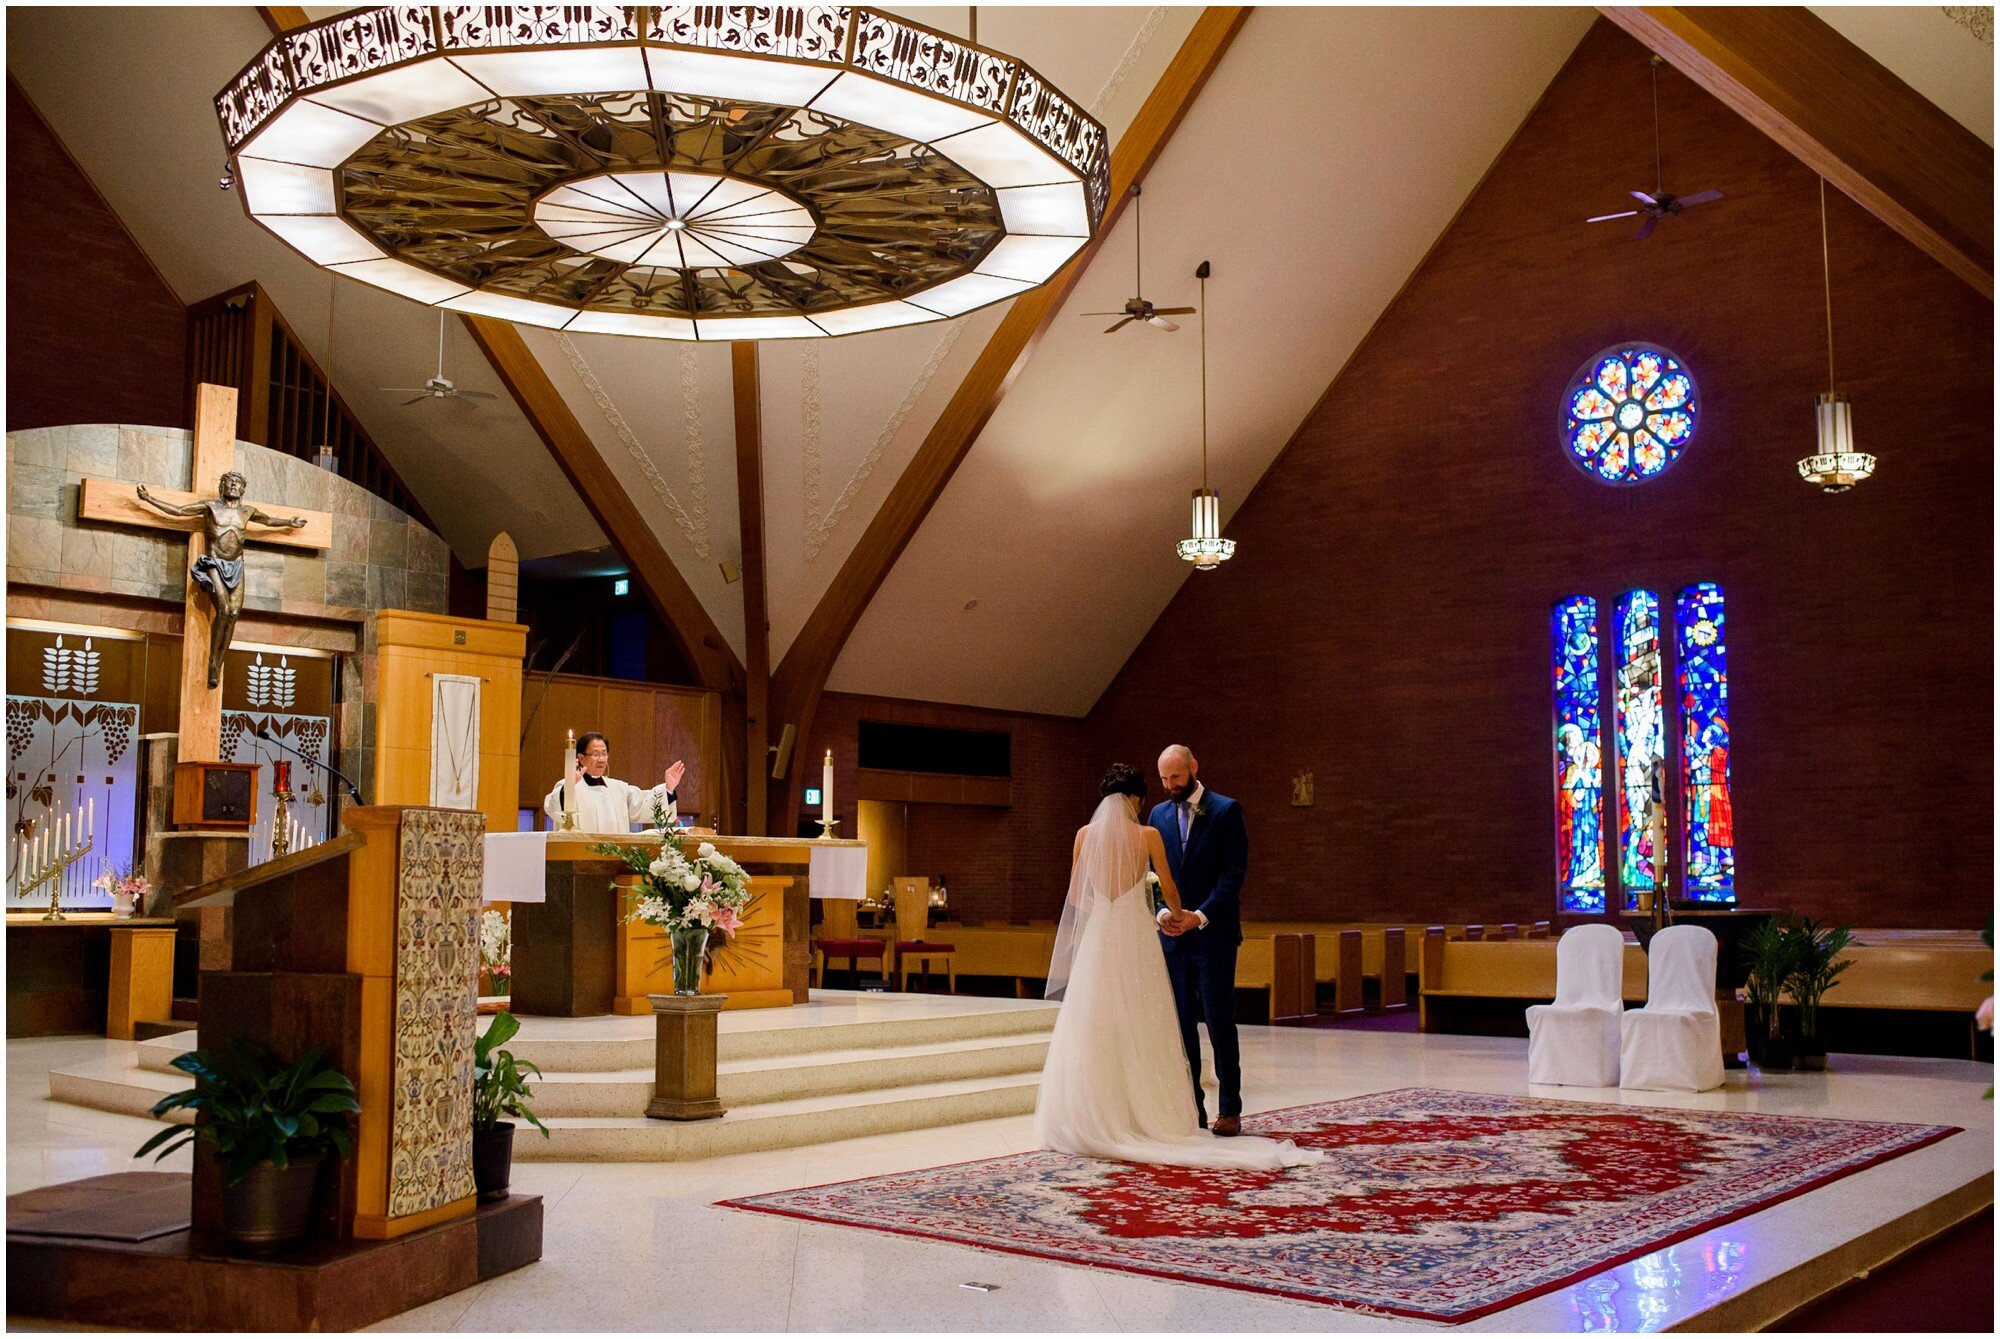 Bride and groom exchange vows in large cathedral in Boulder, Colorado